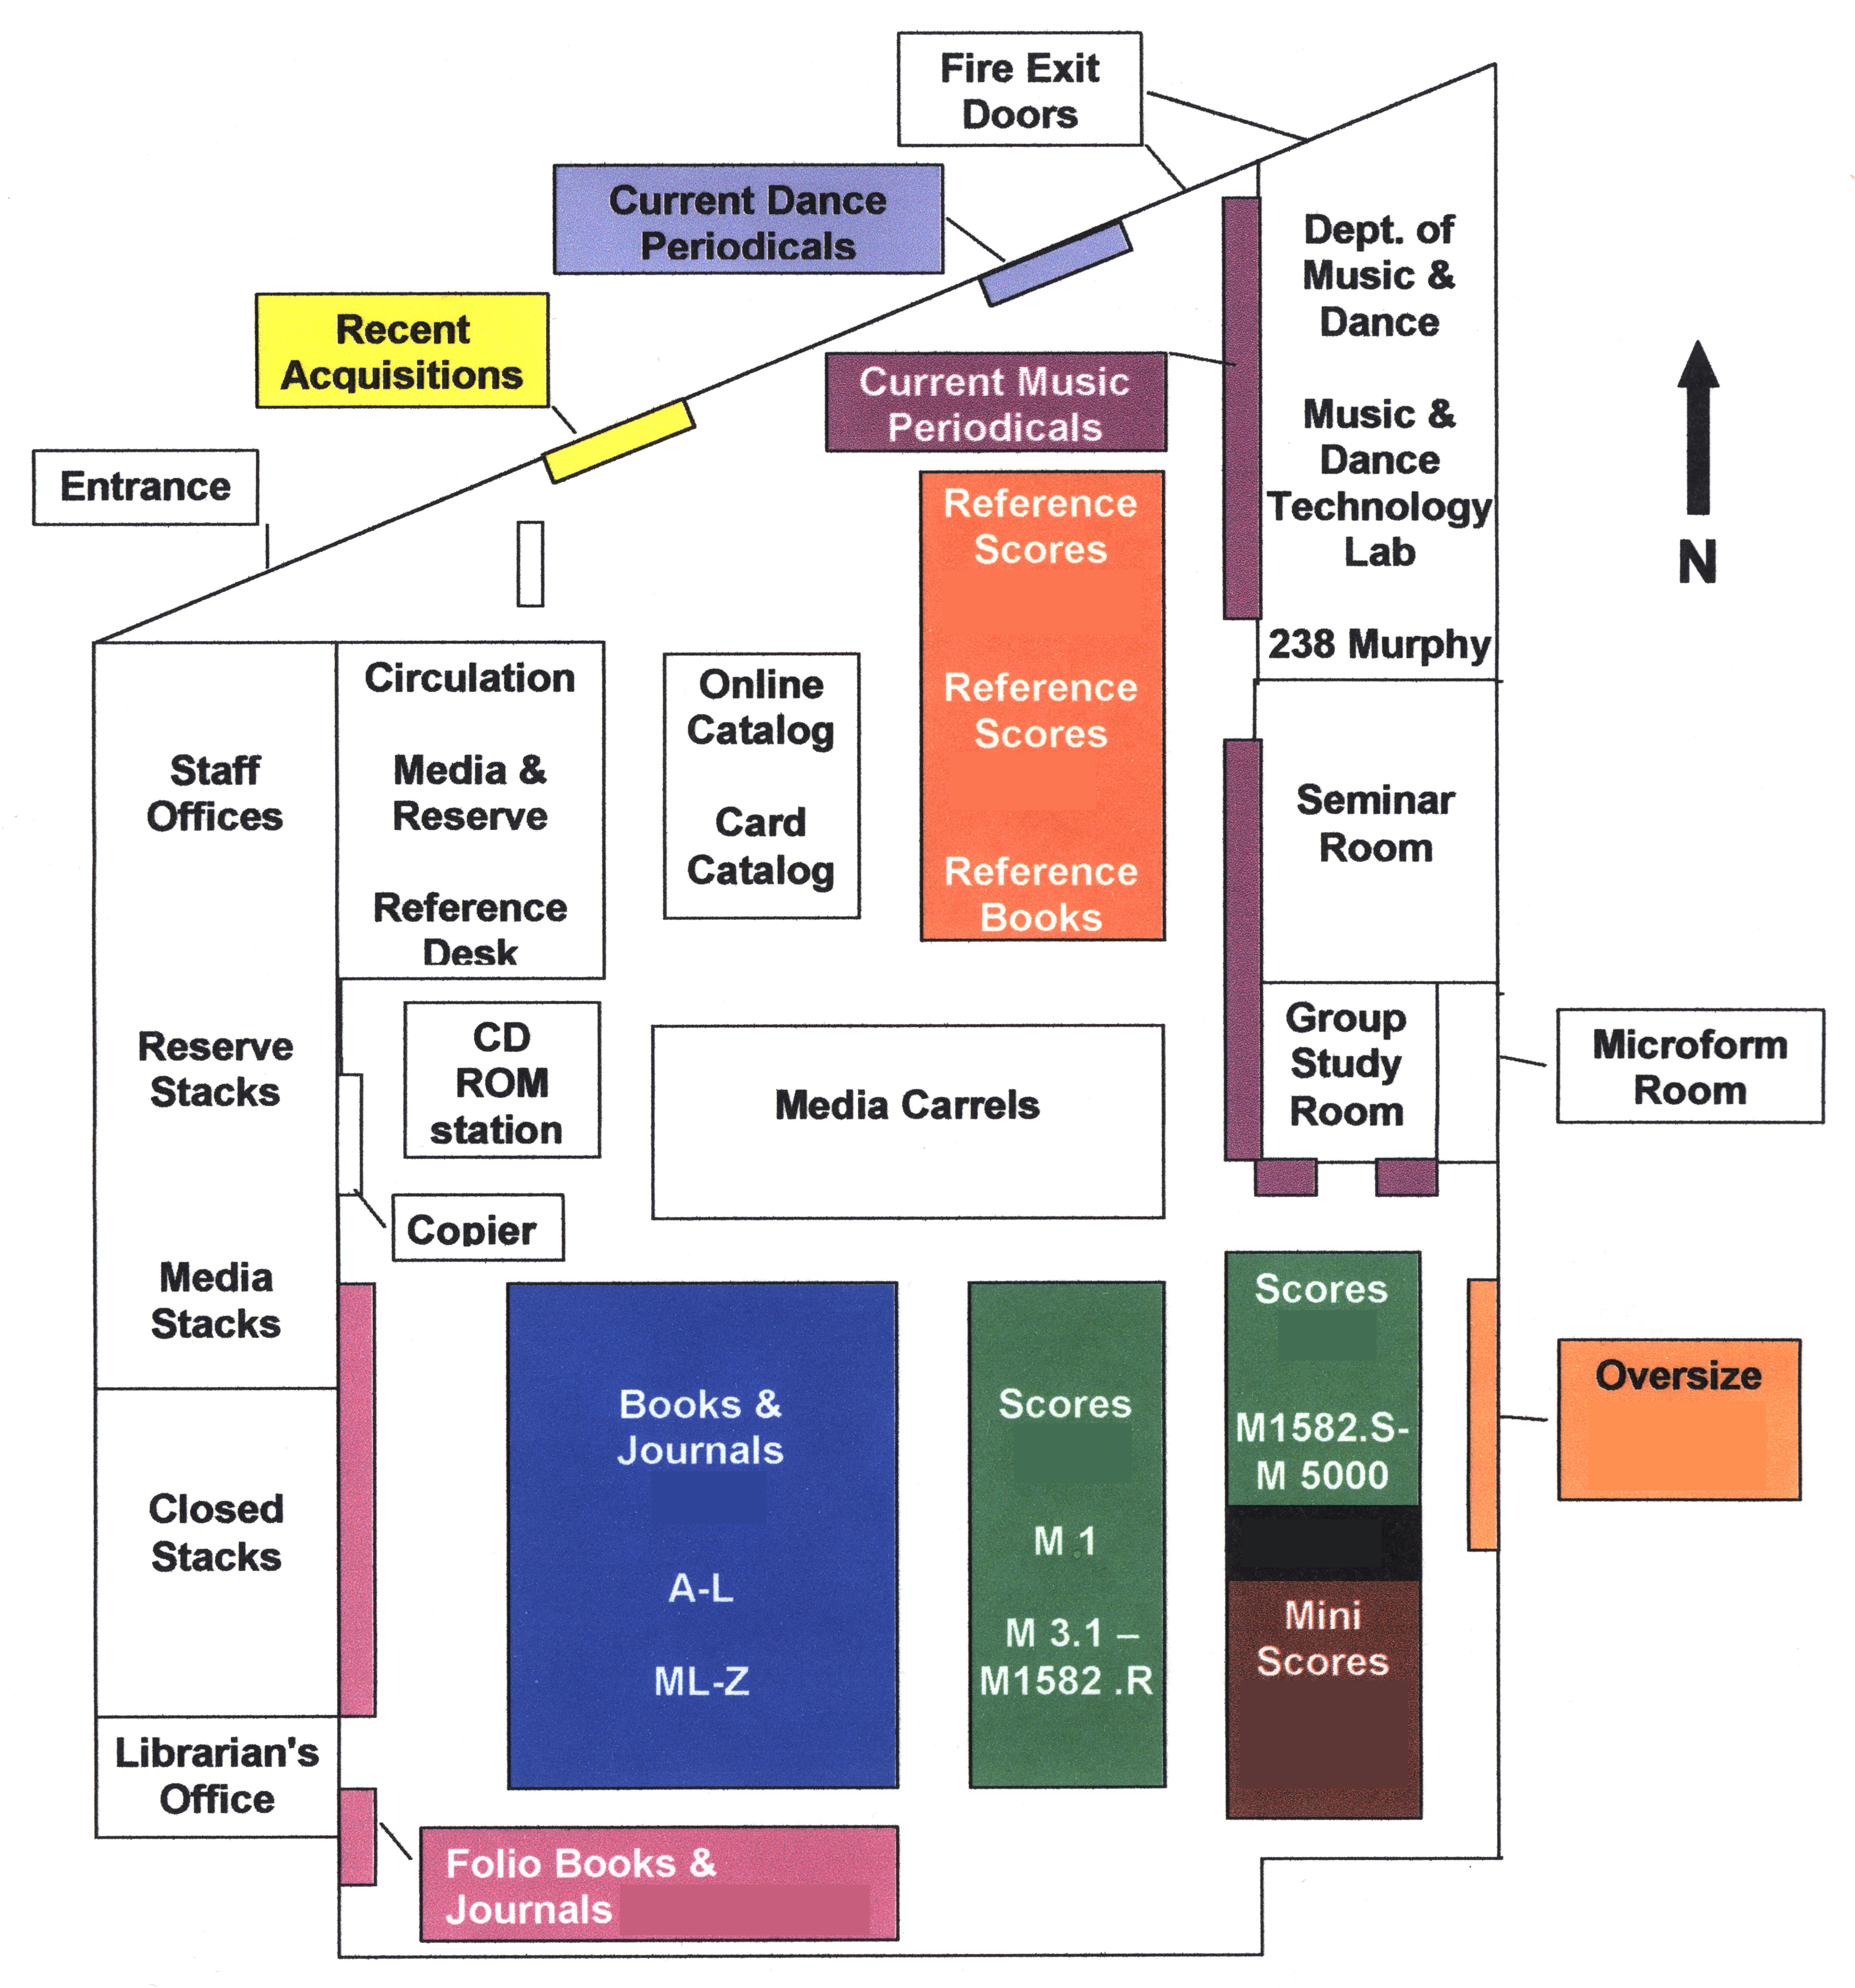 Floormap of the Music and Dance Library